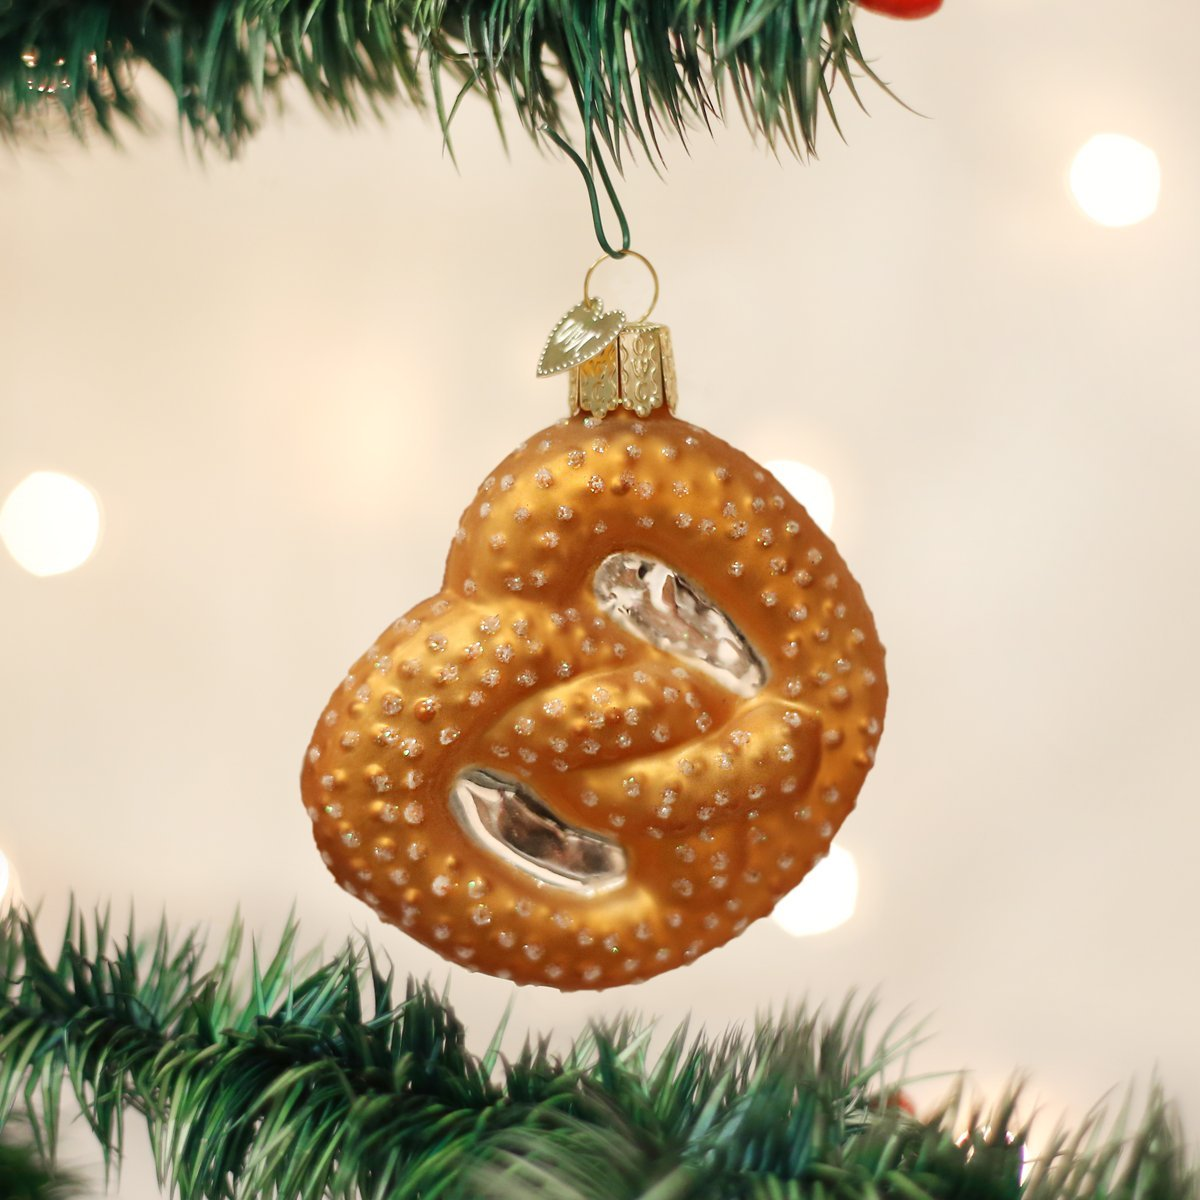 amazoncom old world christmas ornaments pretzel glass blown ornaments for christmas tree home kitchen